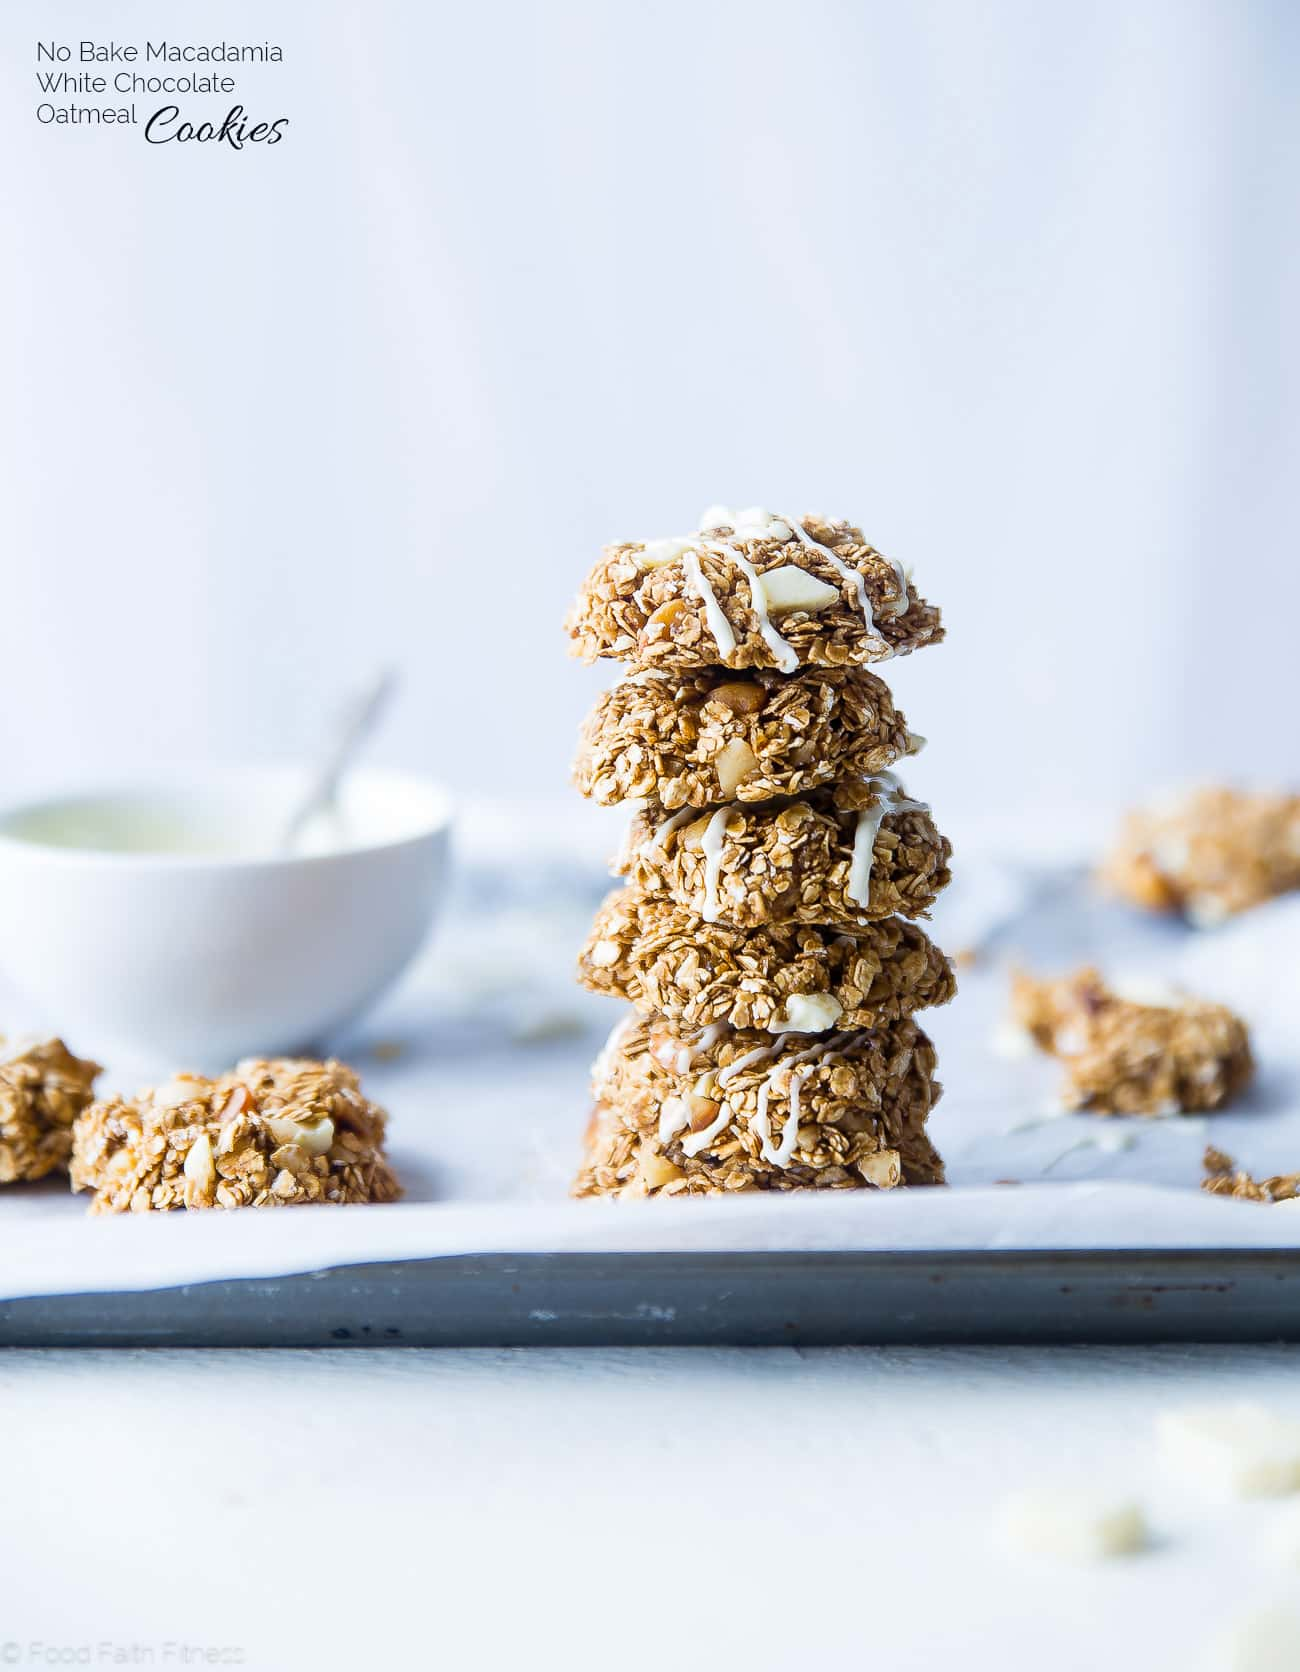 No bake white chocolate macadamia nut cookies stacked on top of each other. Recipe on Foodfaithfitness.com